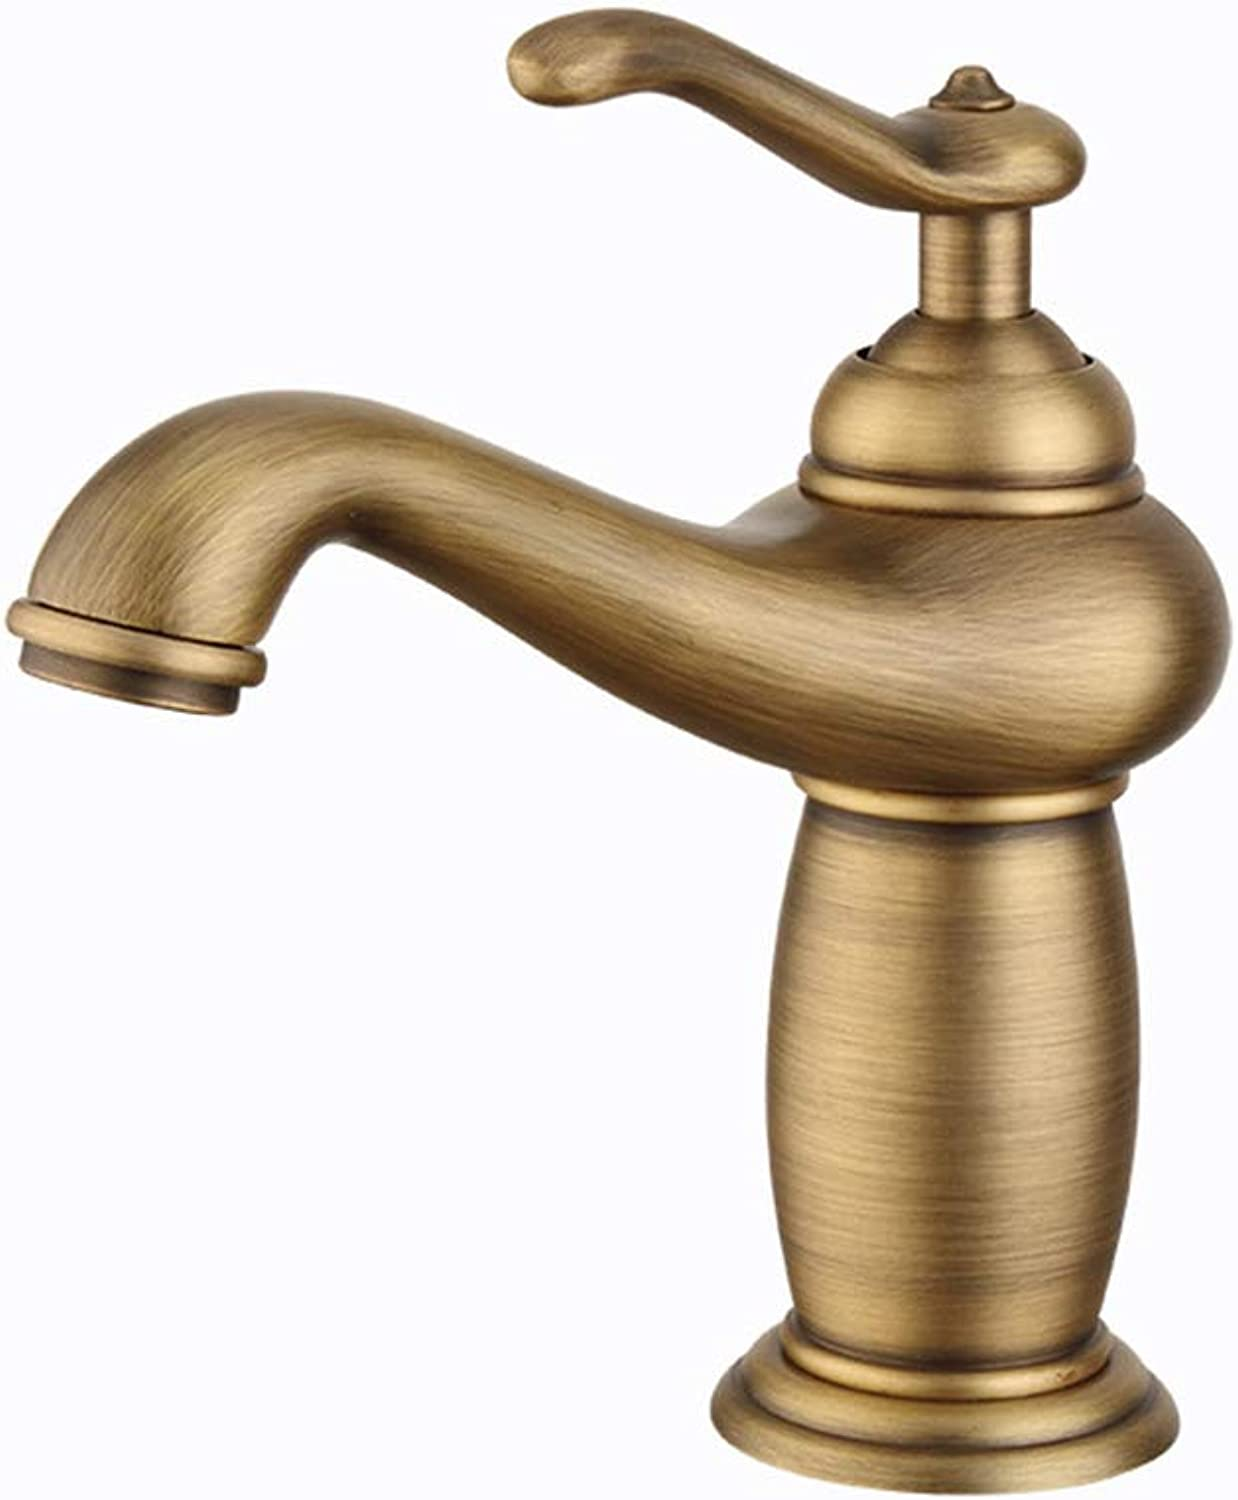 Copper Faucet, Vintage Kitchen Faucet Taps Bathroom Antique Finish Brass Single Sink Tap Kitchen Home USE European Copper Basin Faucet Hot and Cold Water Mixer